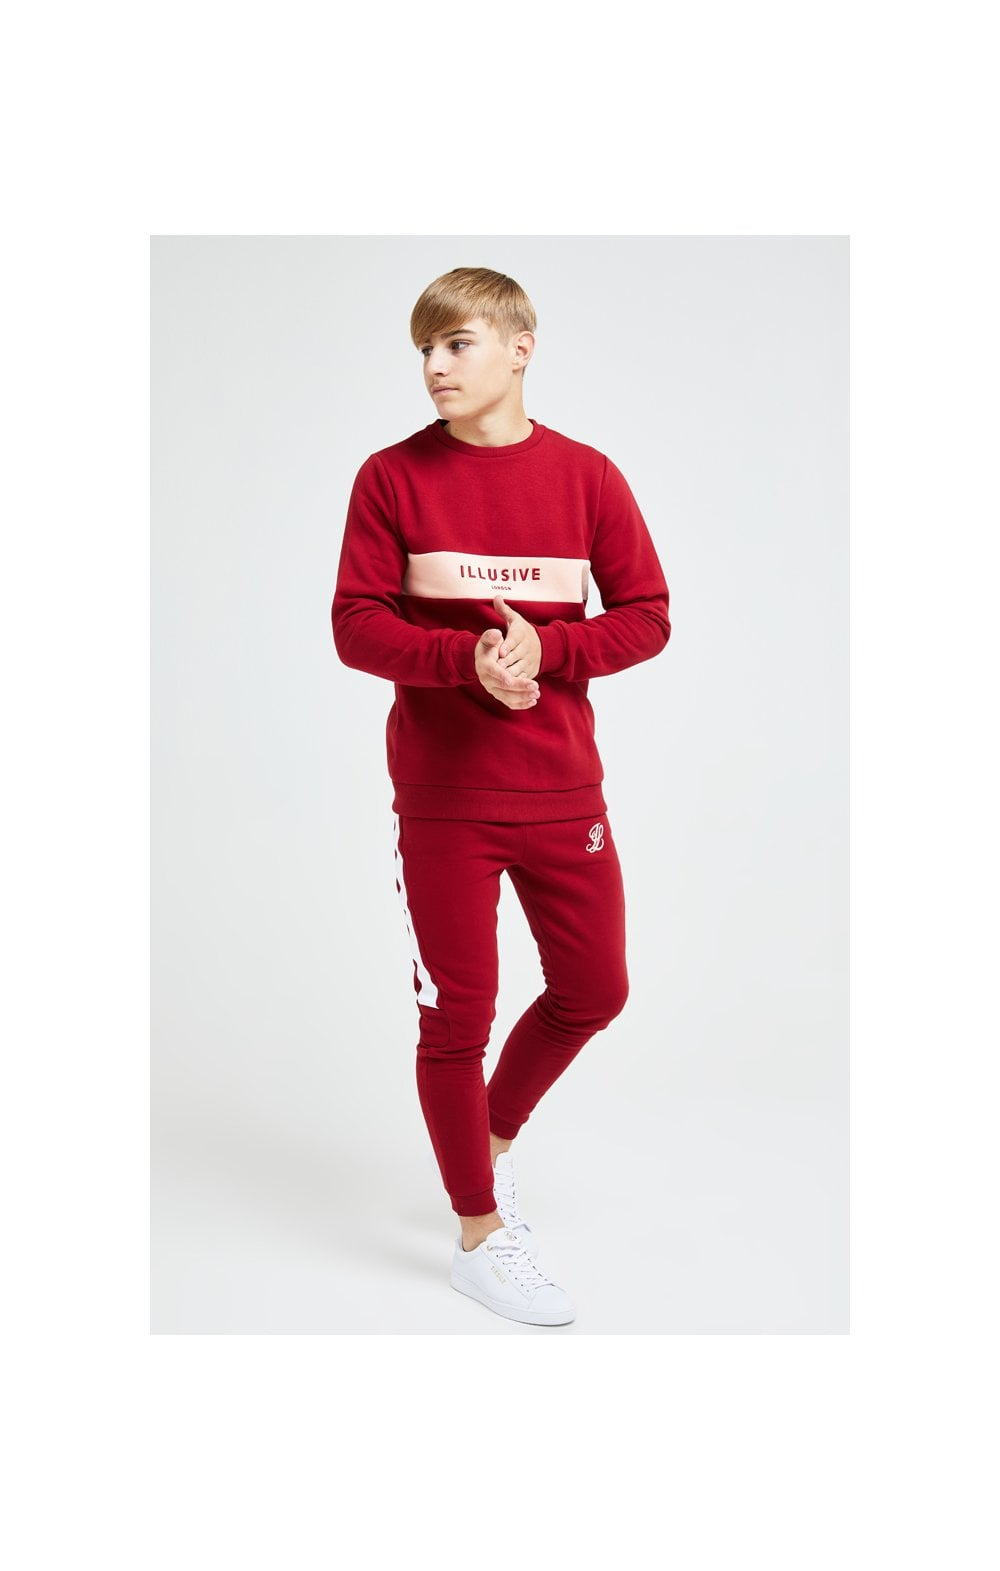 Illusive London Divergence Crew Sweater - Red & Pink (2)